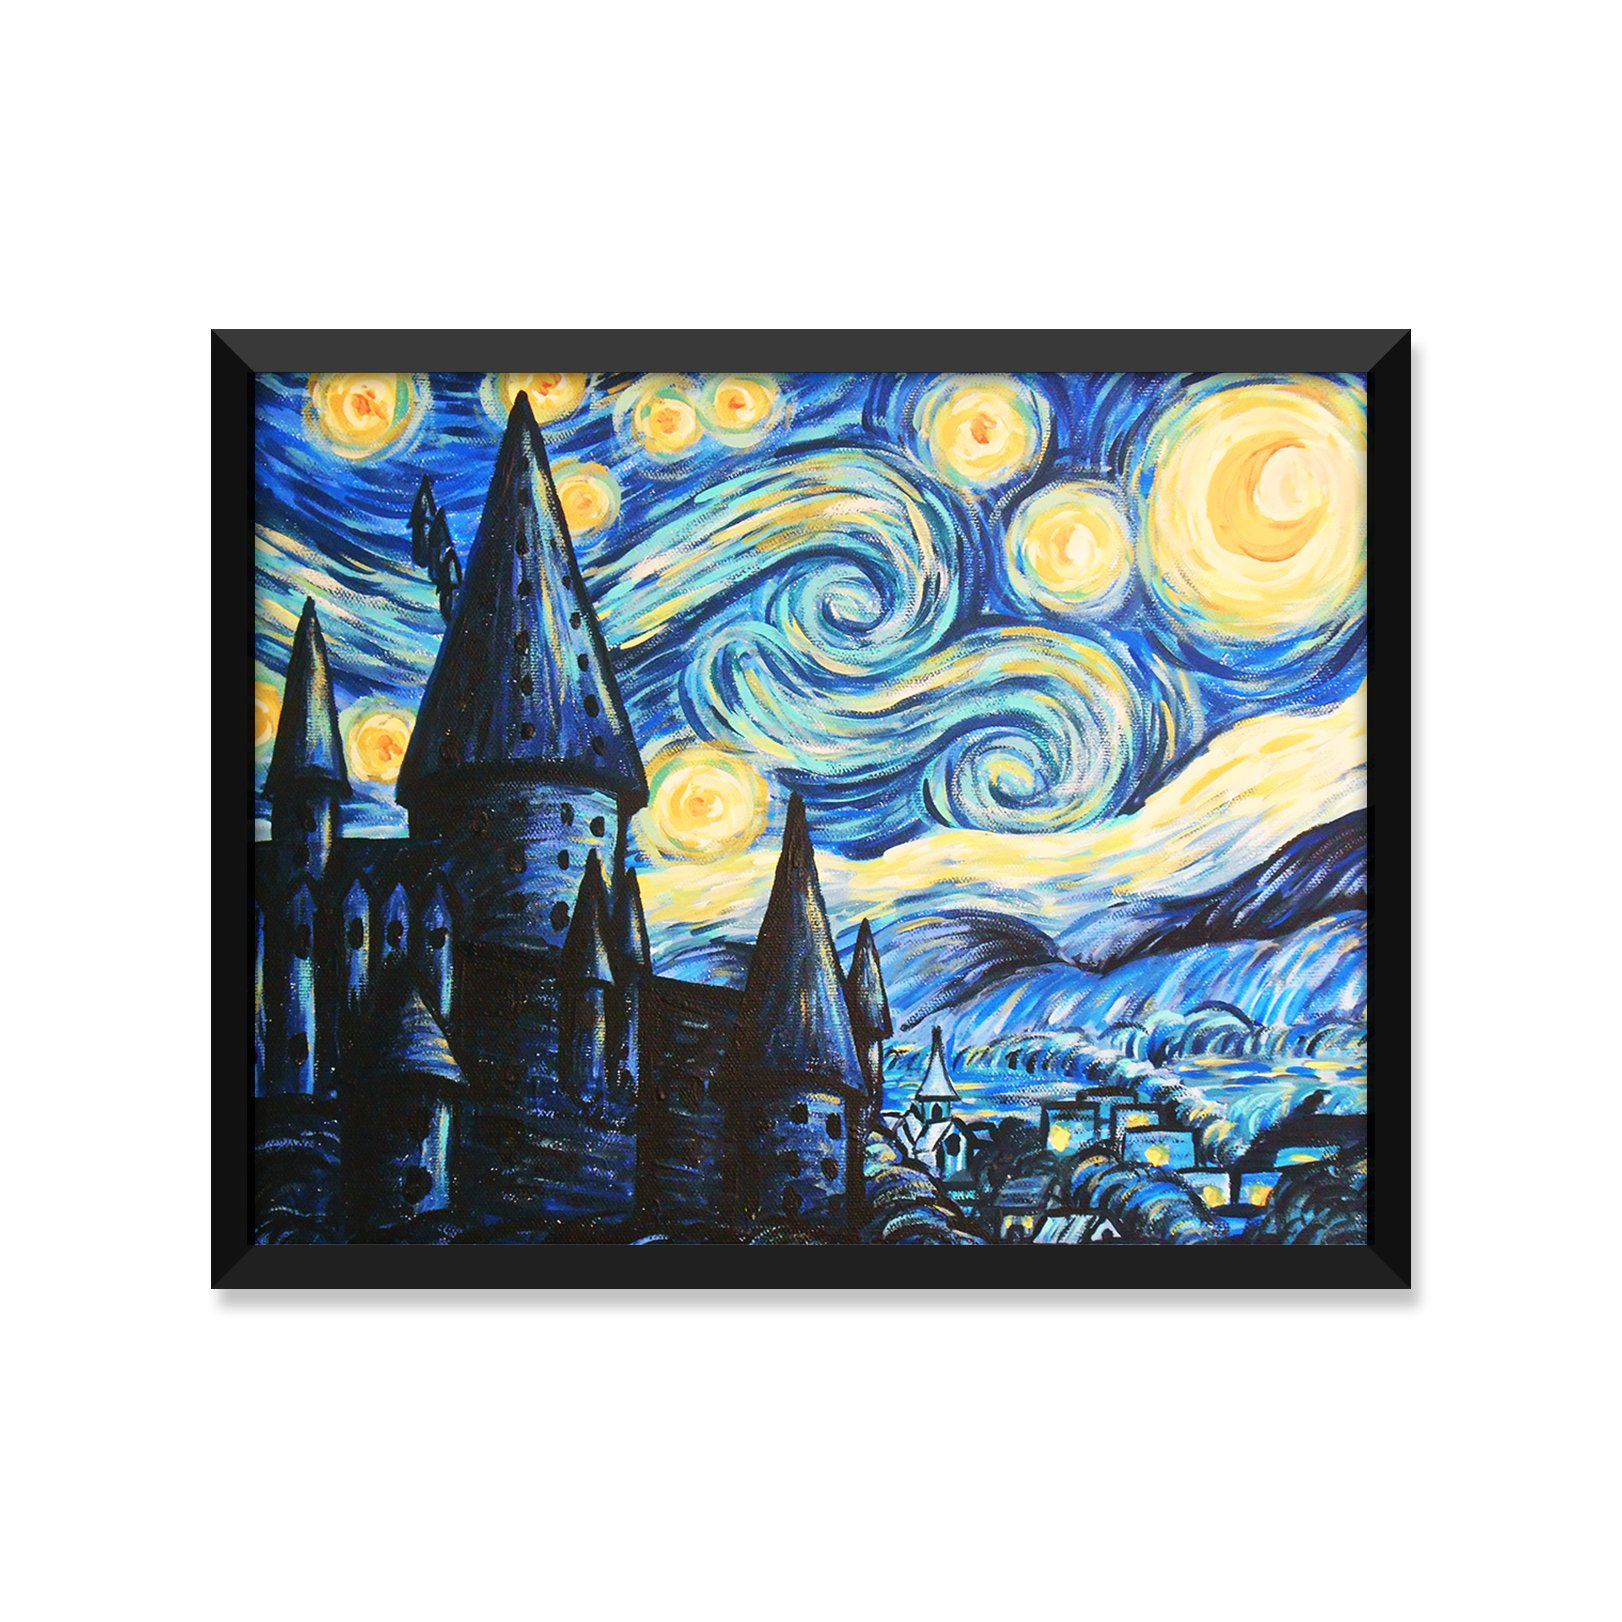 Hogwarts Starry Night Painting, Harry Potter Poster, Minimalist Poster, Home Decor, College Dorm Room Decorations, Wall Art